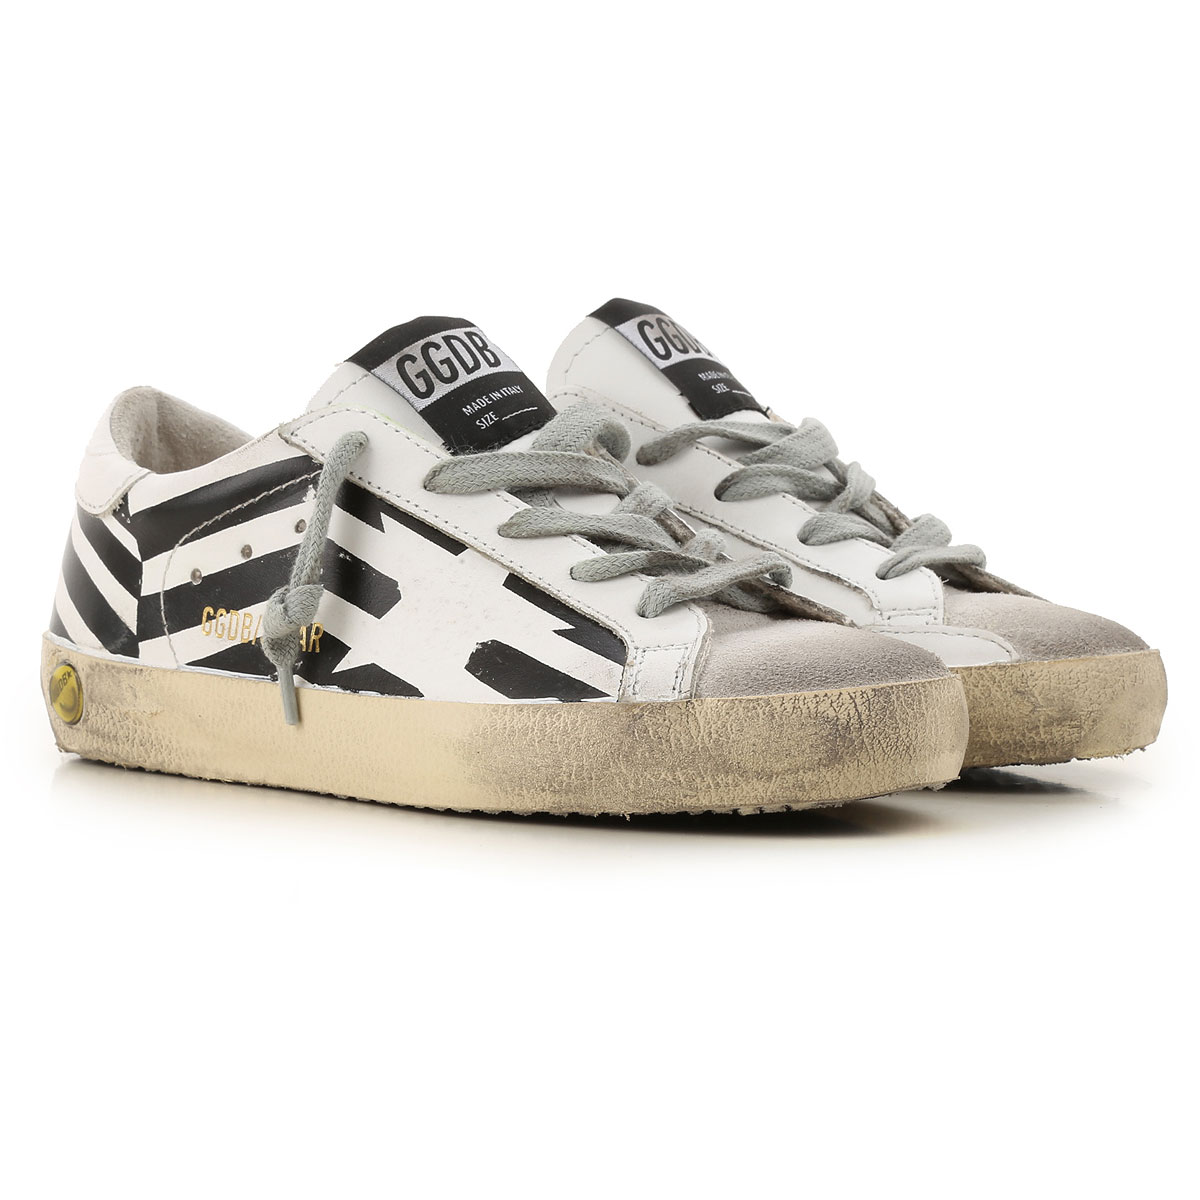 Golden Goose Kids Shoes for Boys On Sale, White, Leather, 2019, 29 30 31 32 33